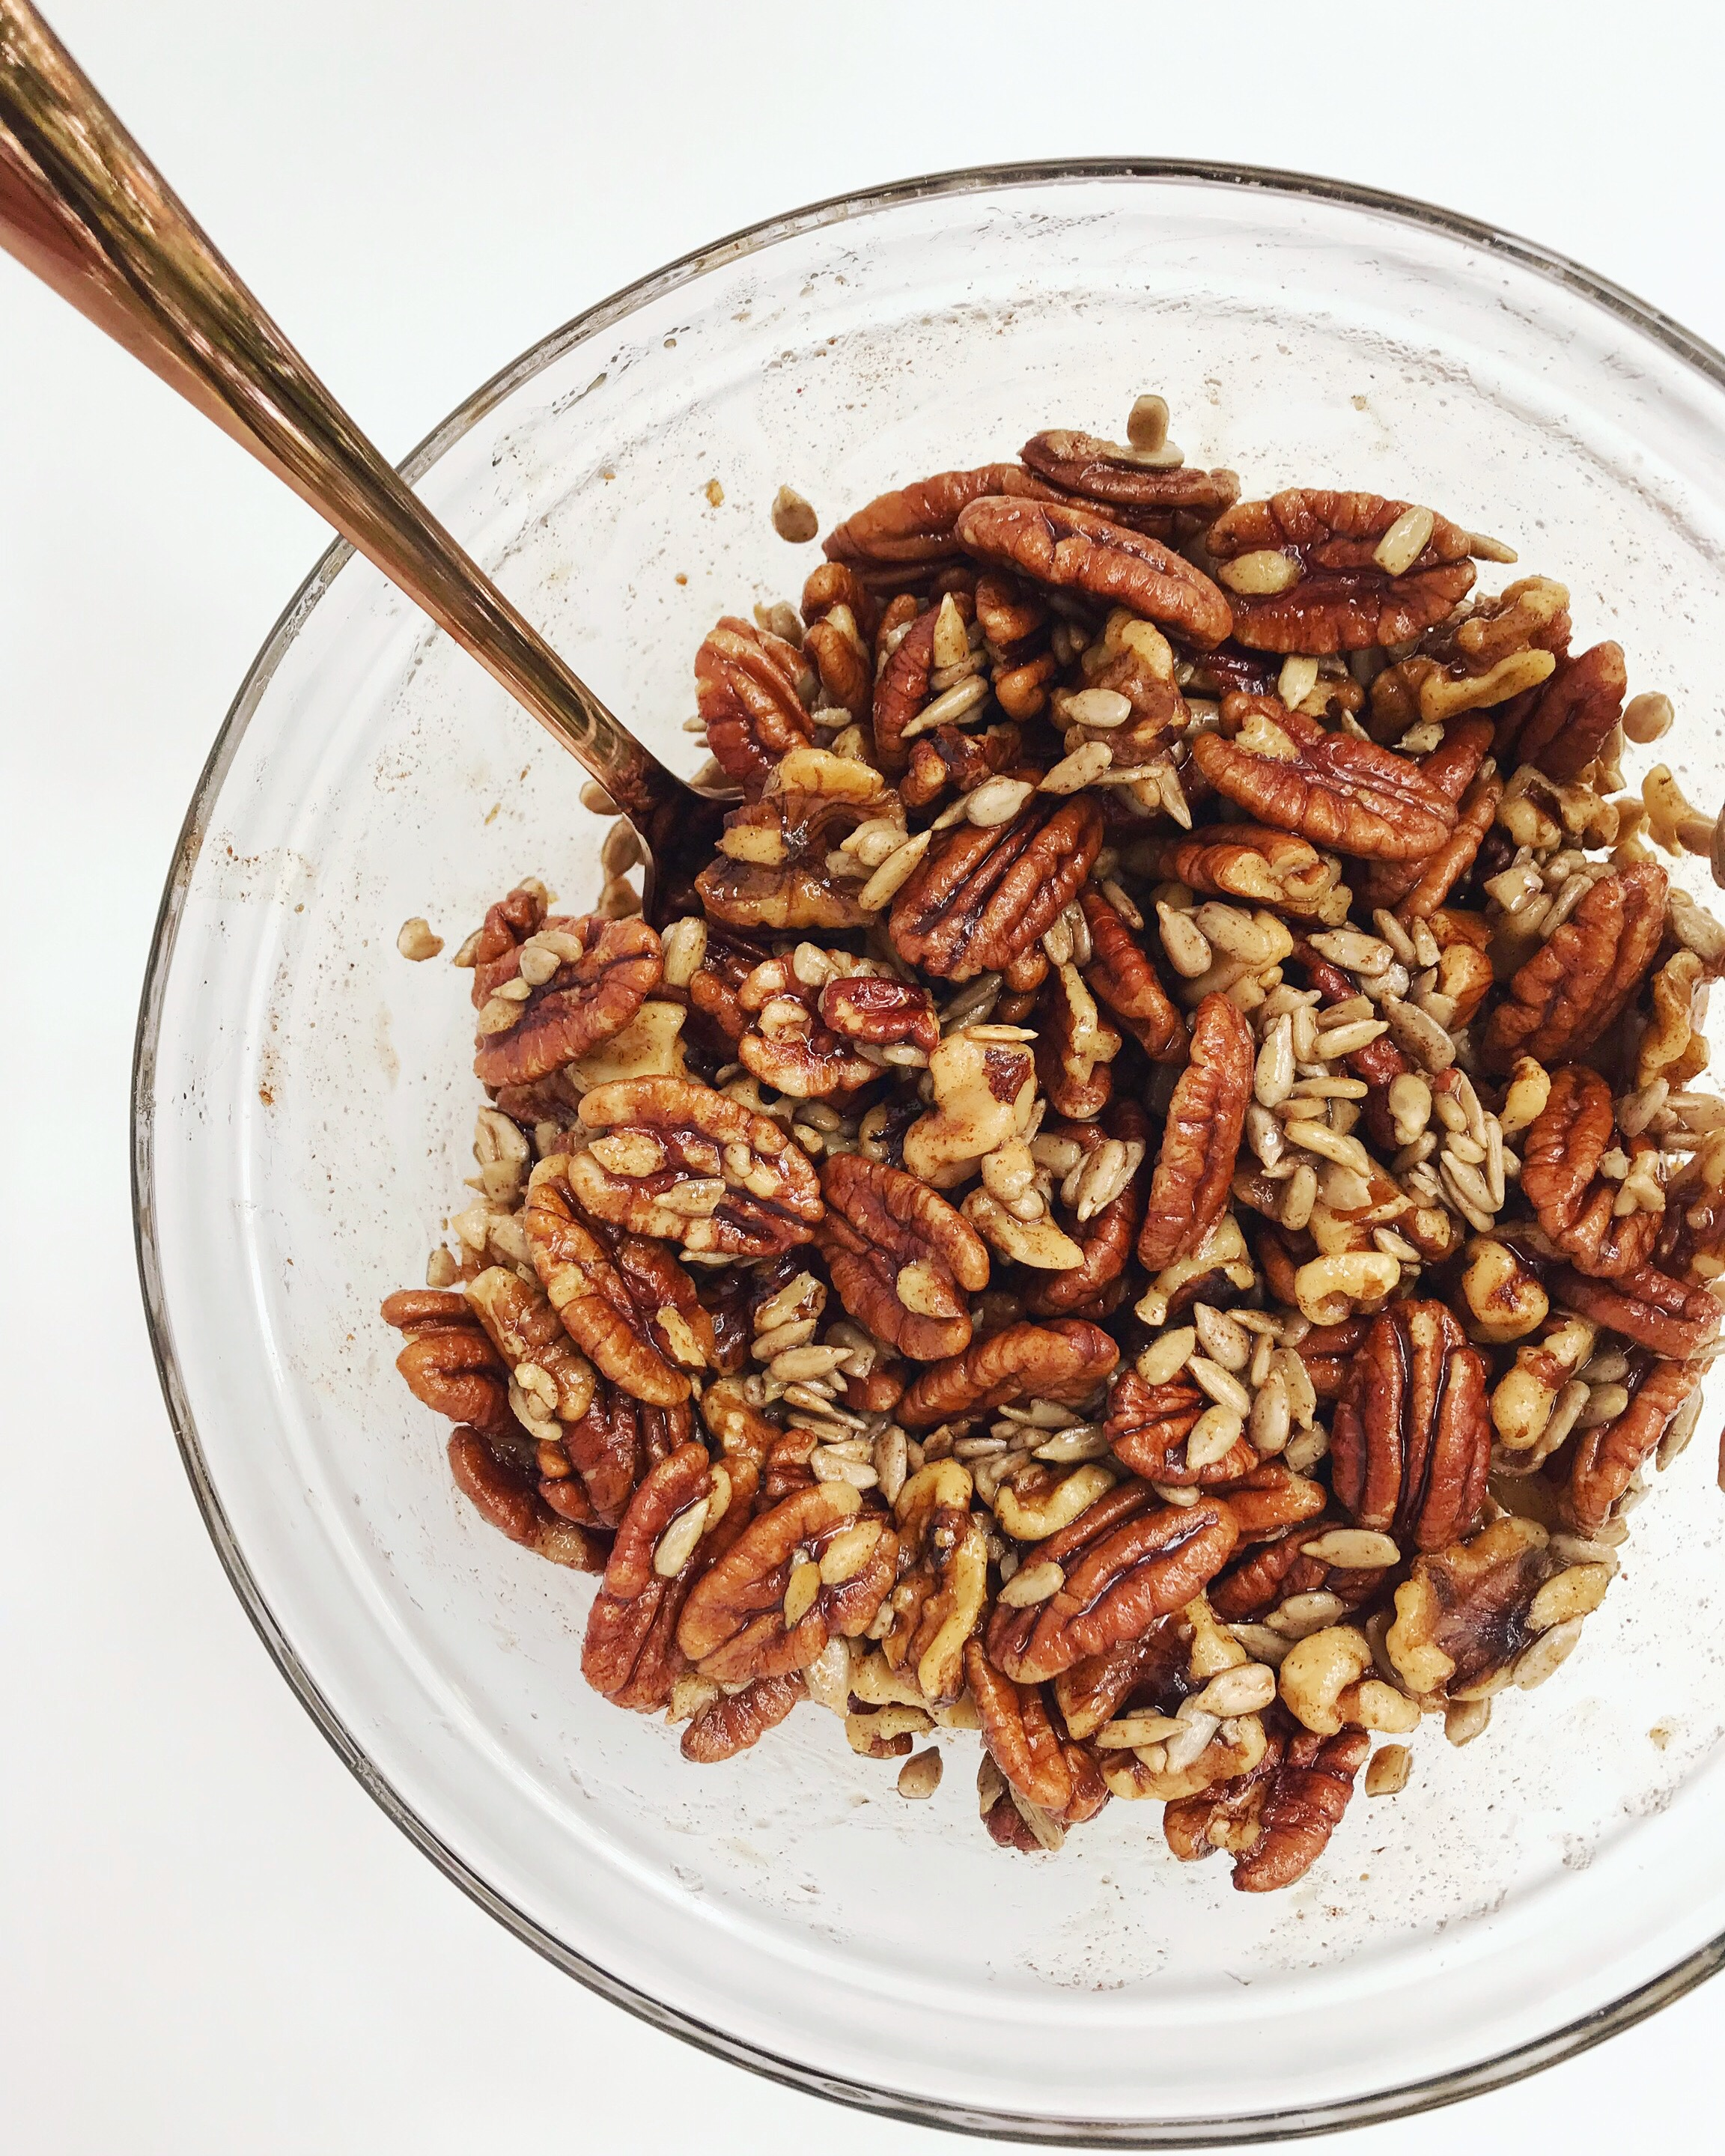 Mixing bowl full of pecans, walnuts, and sunflower seeds.